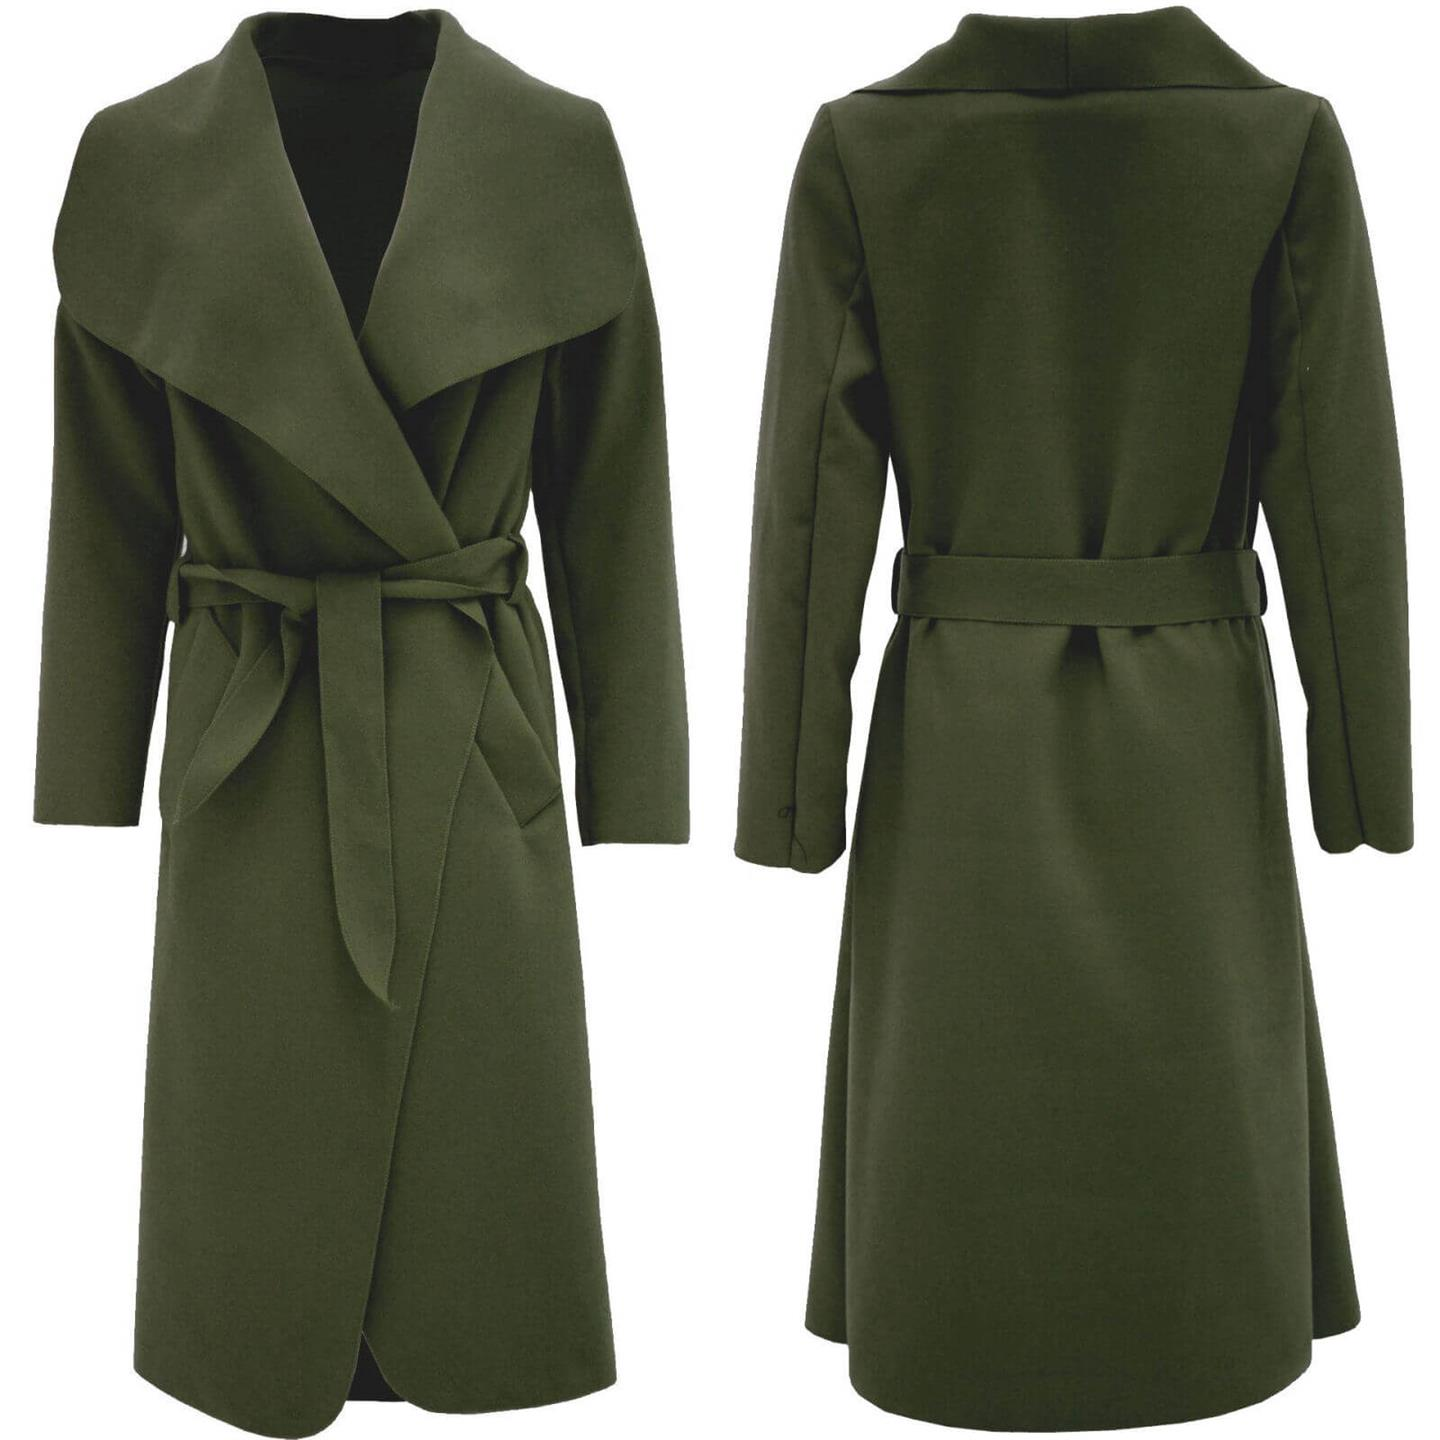 Womens Long Camel Waterfall Wrap Drape Belted Evening Winter Trench Jacket Coat